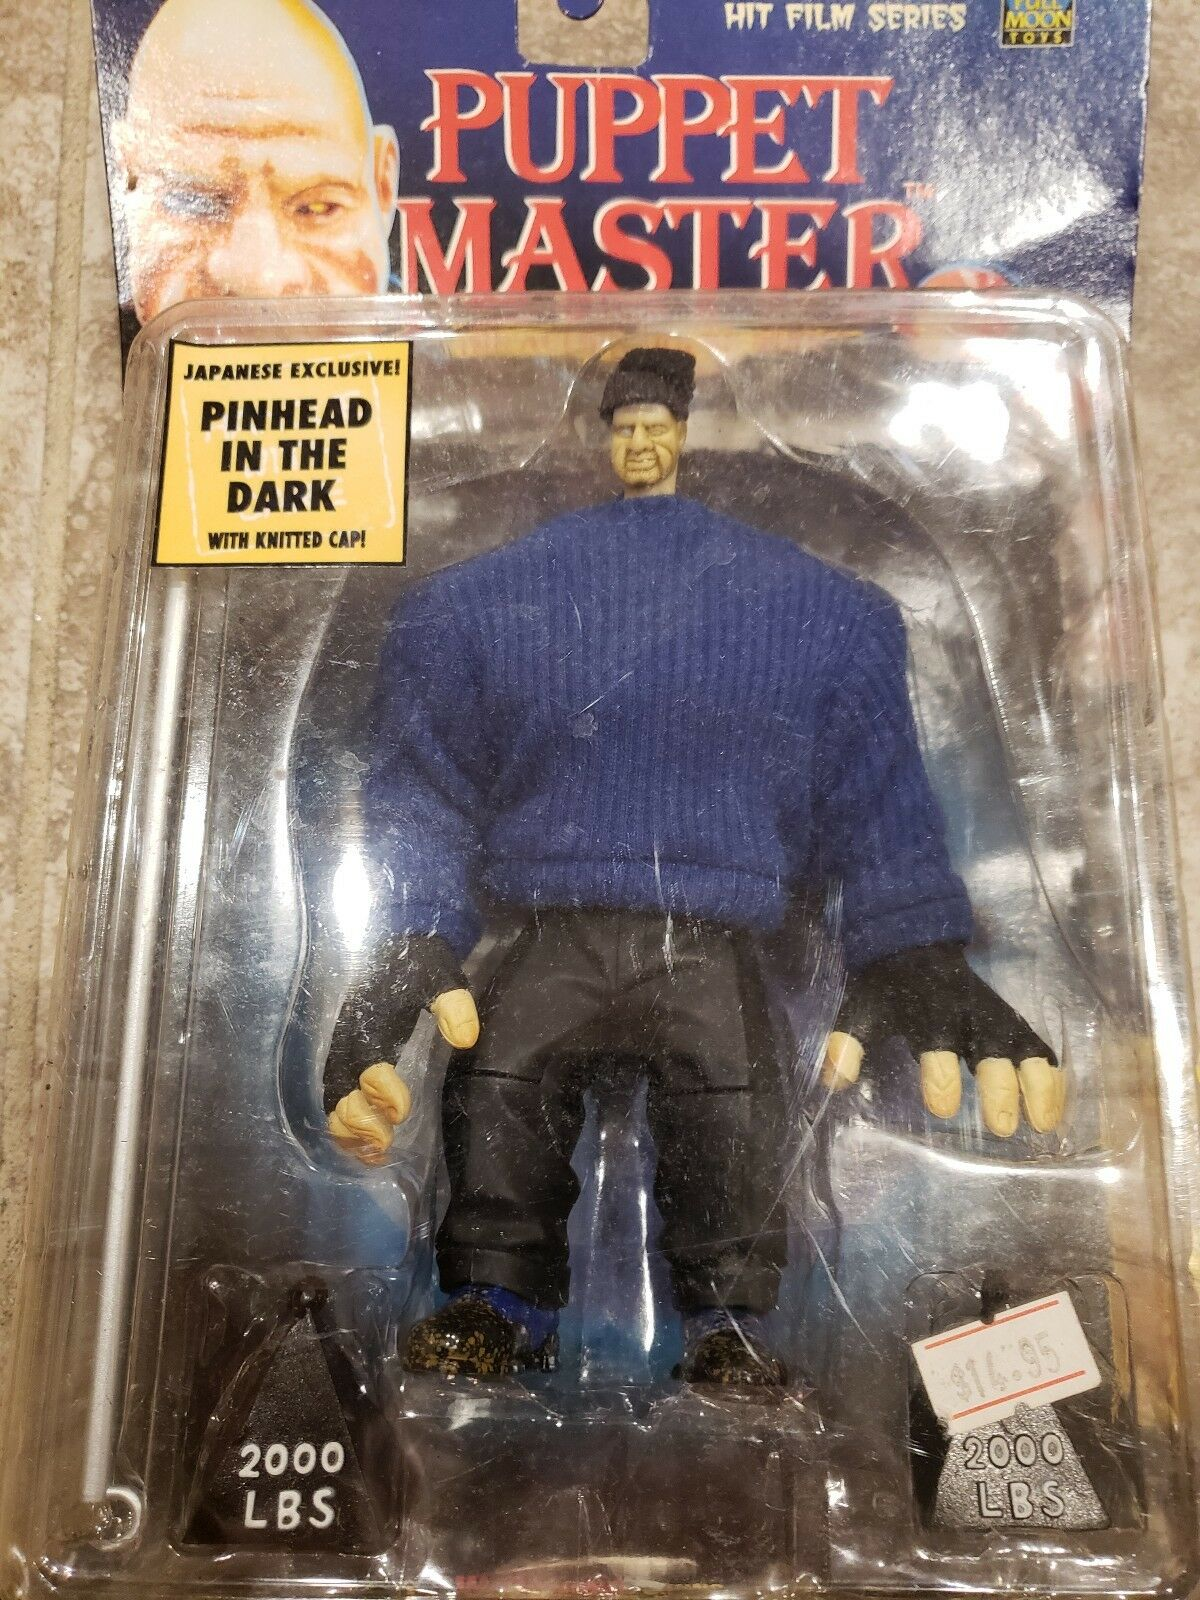 Japanese Exclusive Puppet Master 1998 Pinhead w  Knitted Cap.